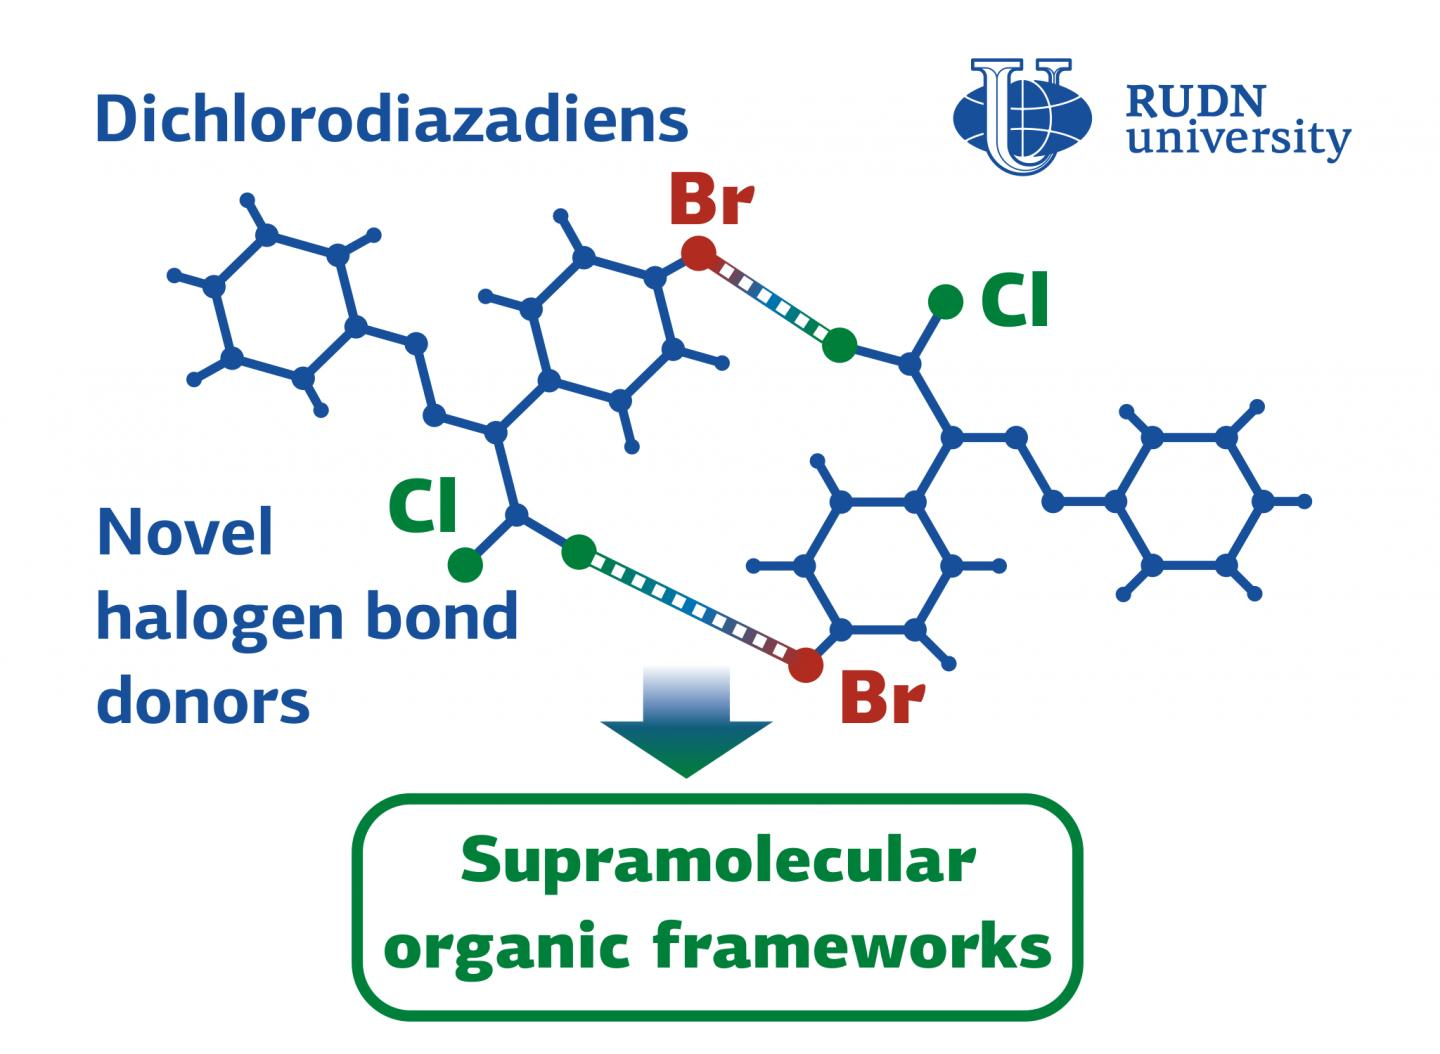 RUDN University Chemists Create Substances for Supramolecules Self-assembly